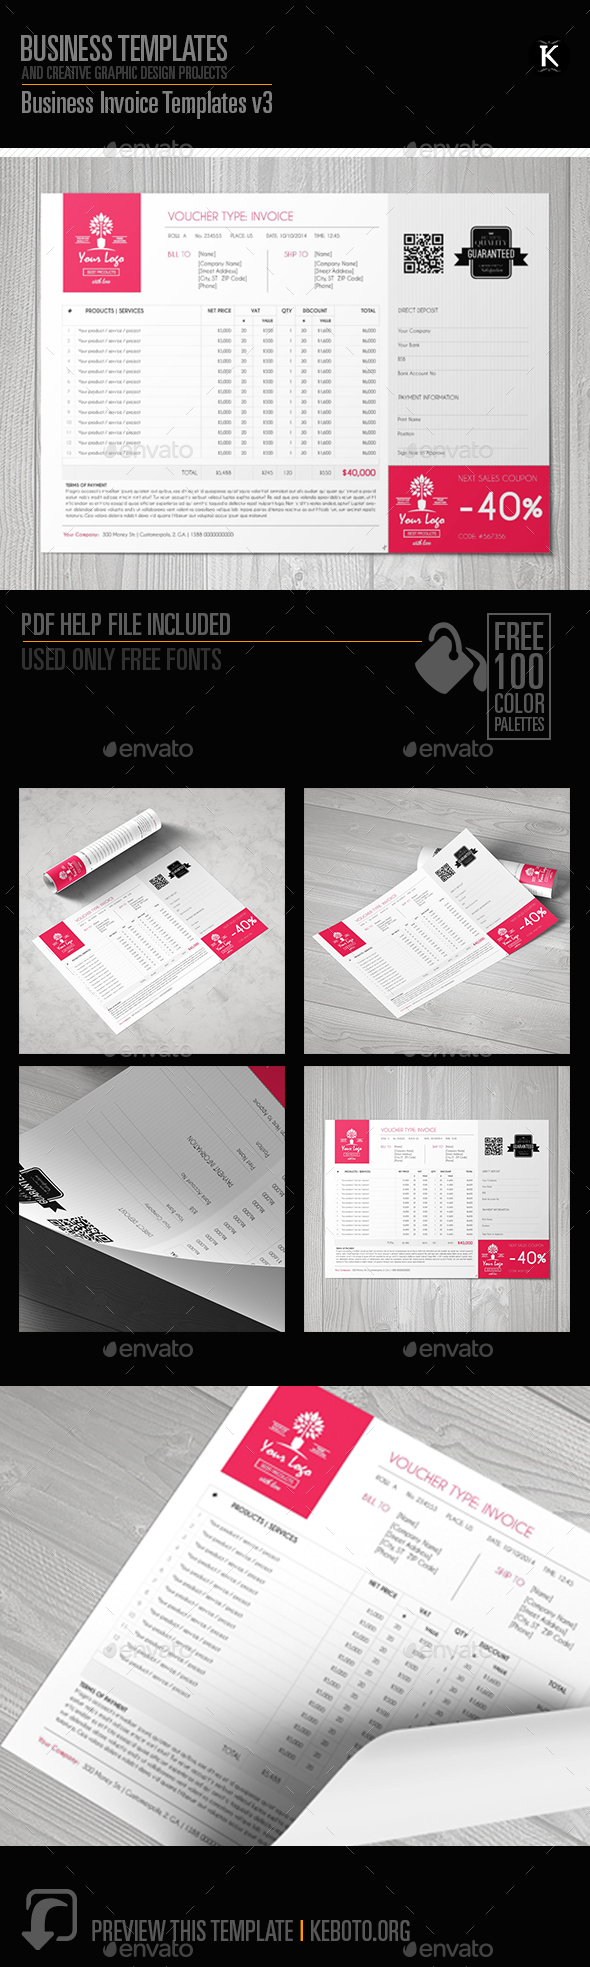 Business Invoice Templates v3 - Proposals & Invoices Stationery